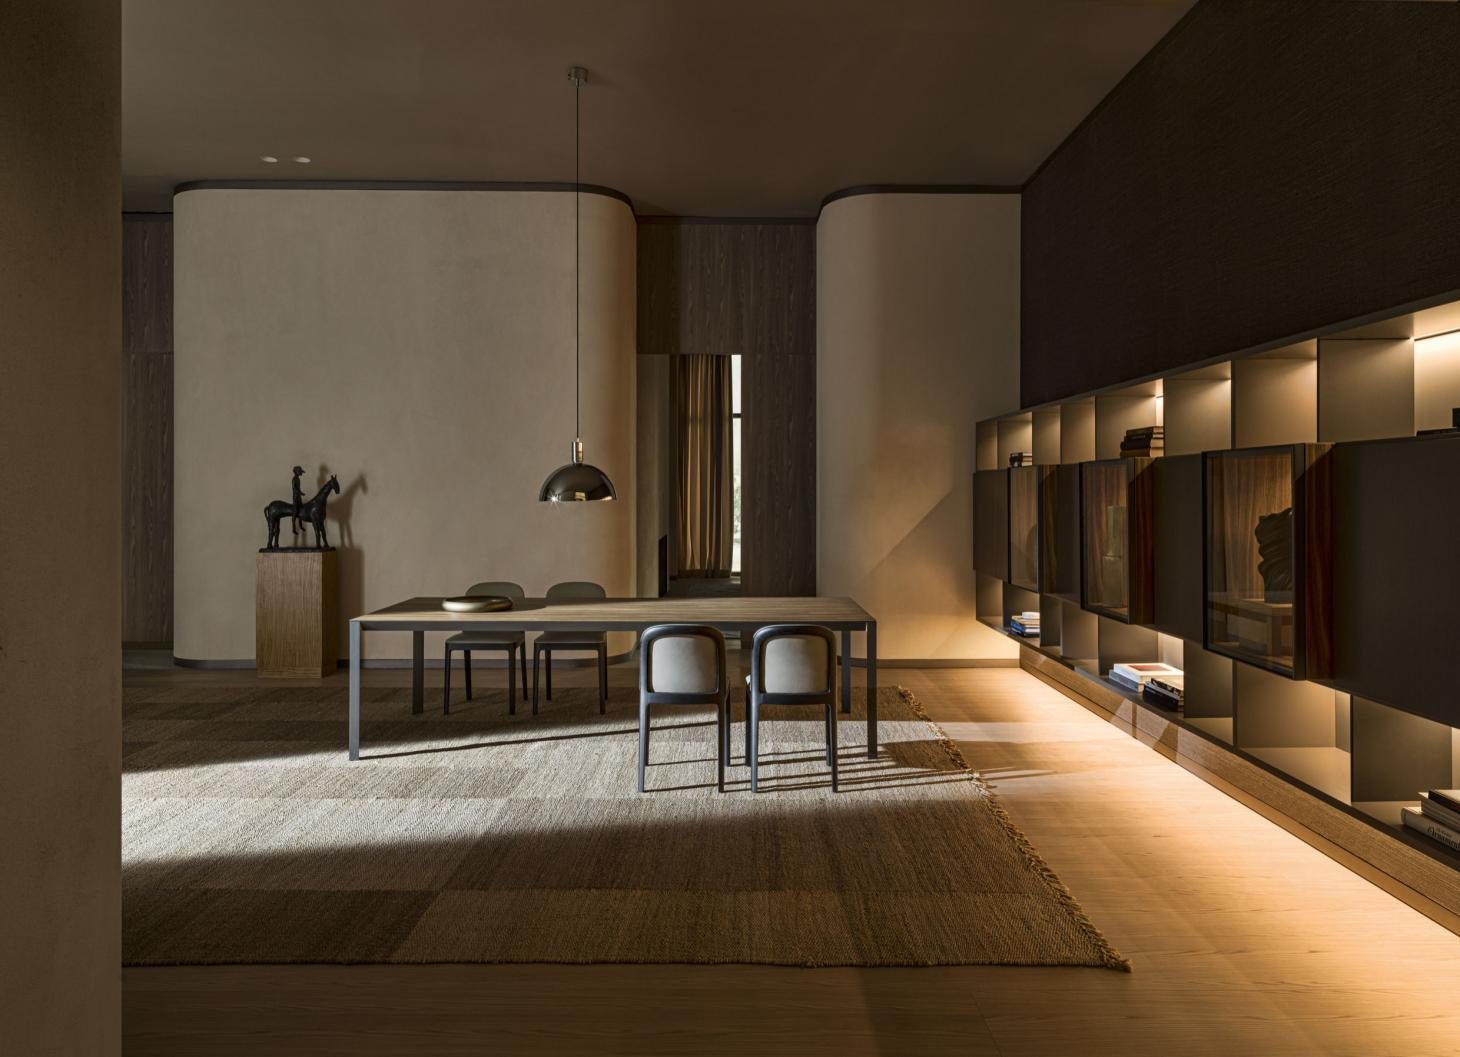 Dining room featuring Jasper Morrison's chair for Molteni with a curved back and black wood structure